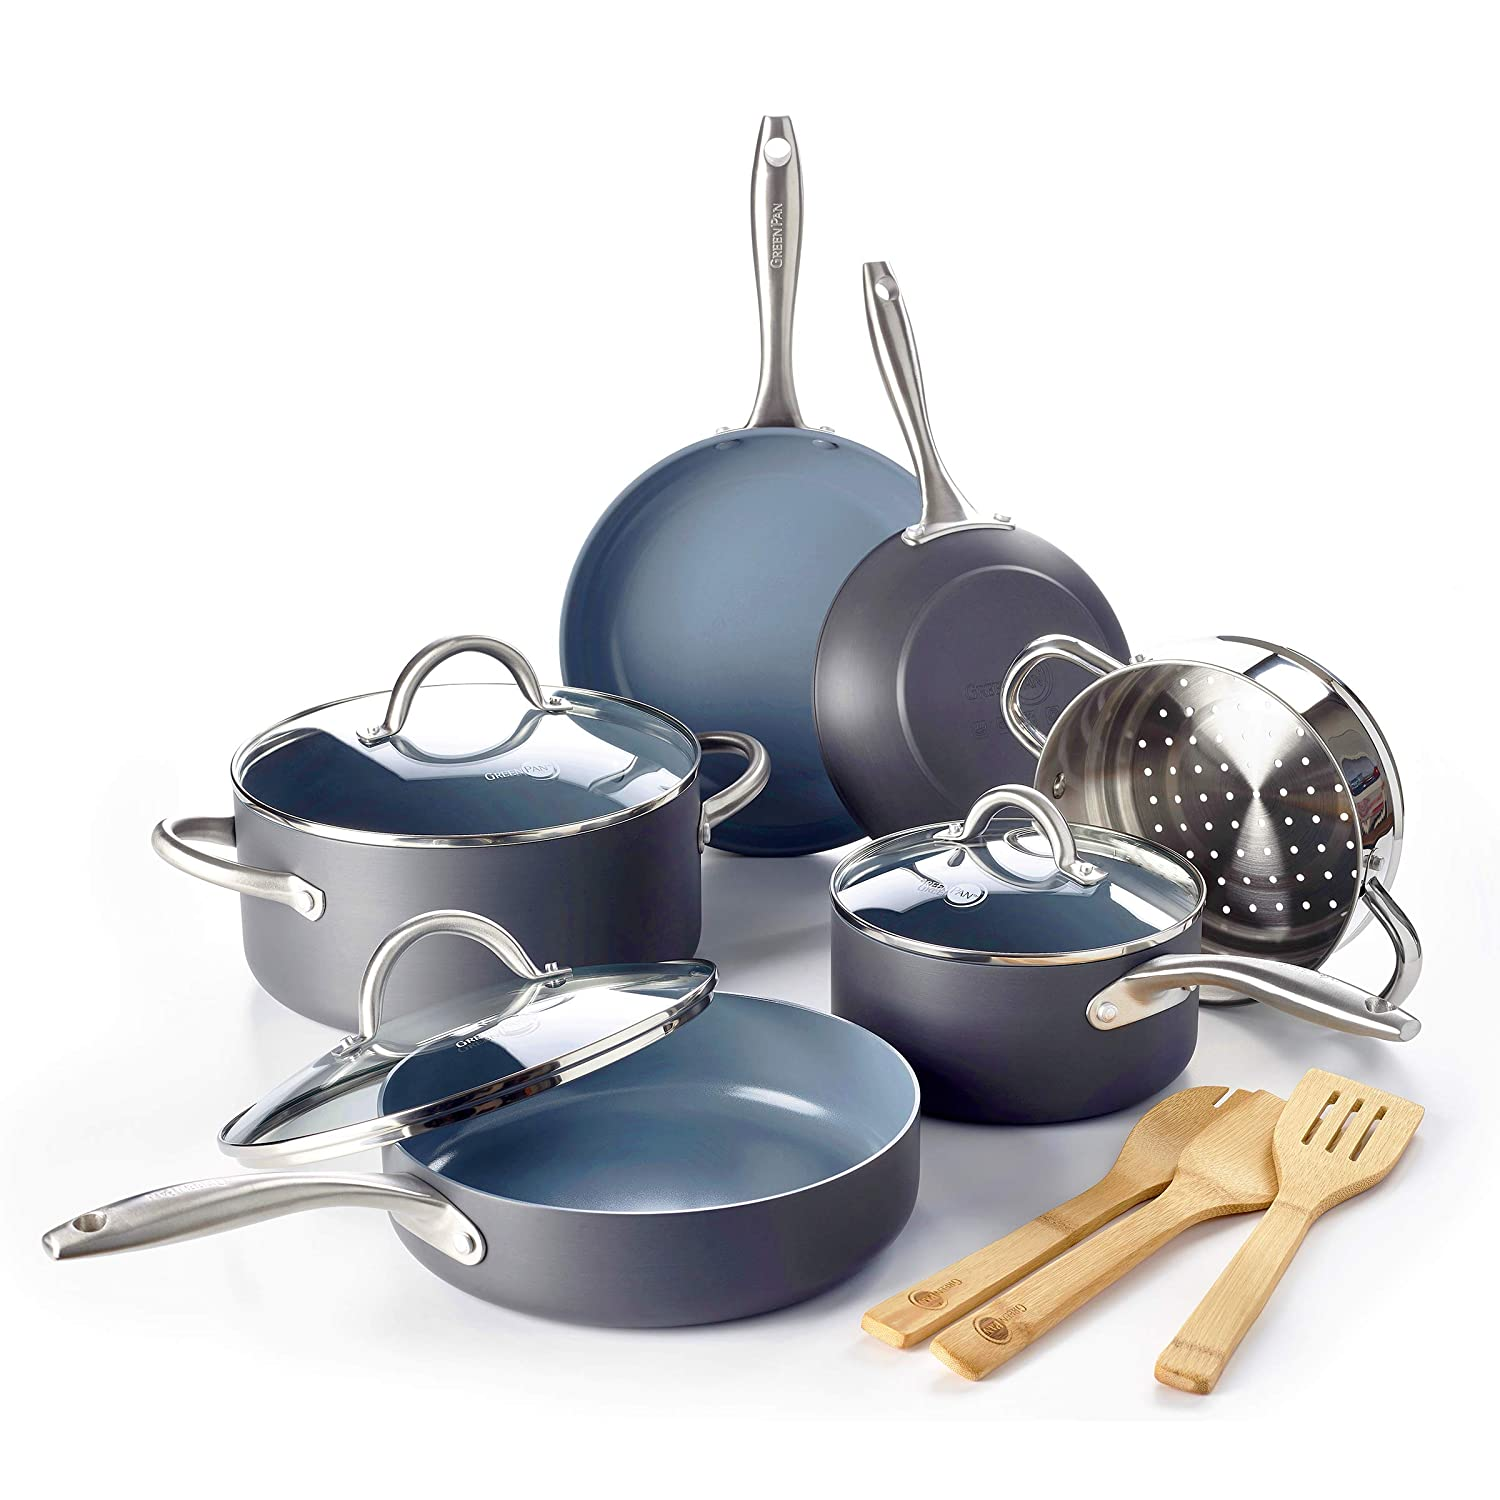 GreenPan Lima Ceramic Non-Stick Cookware Set, 12pc